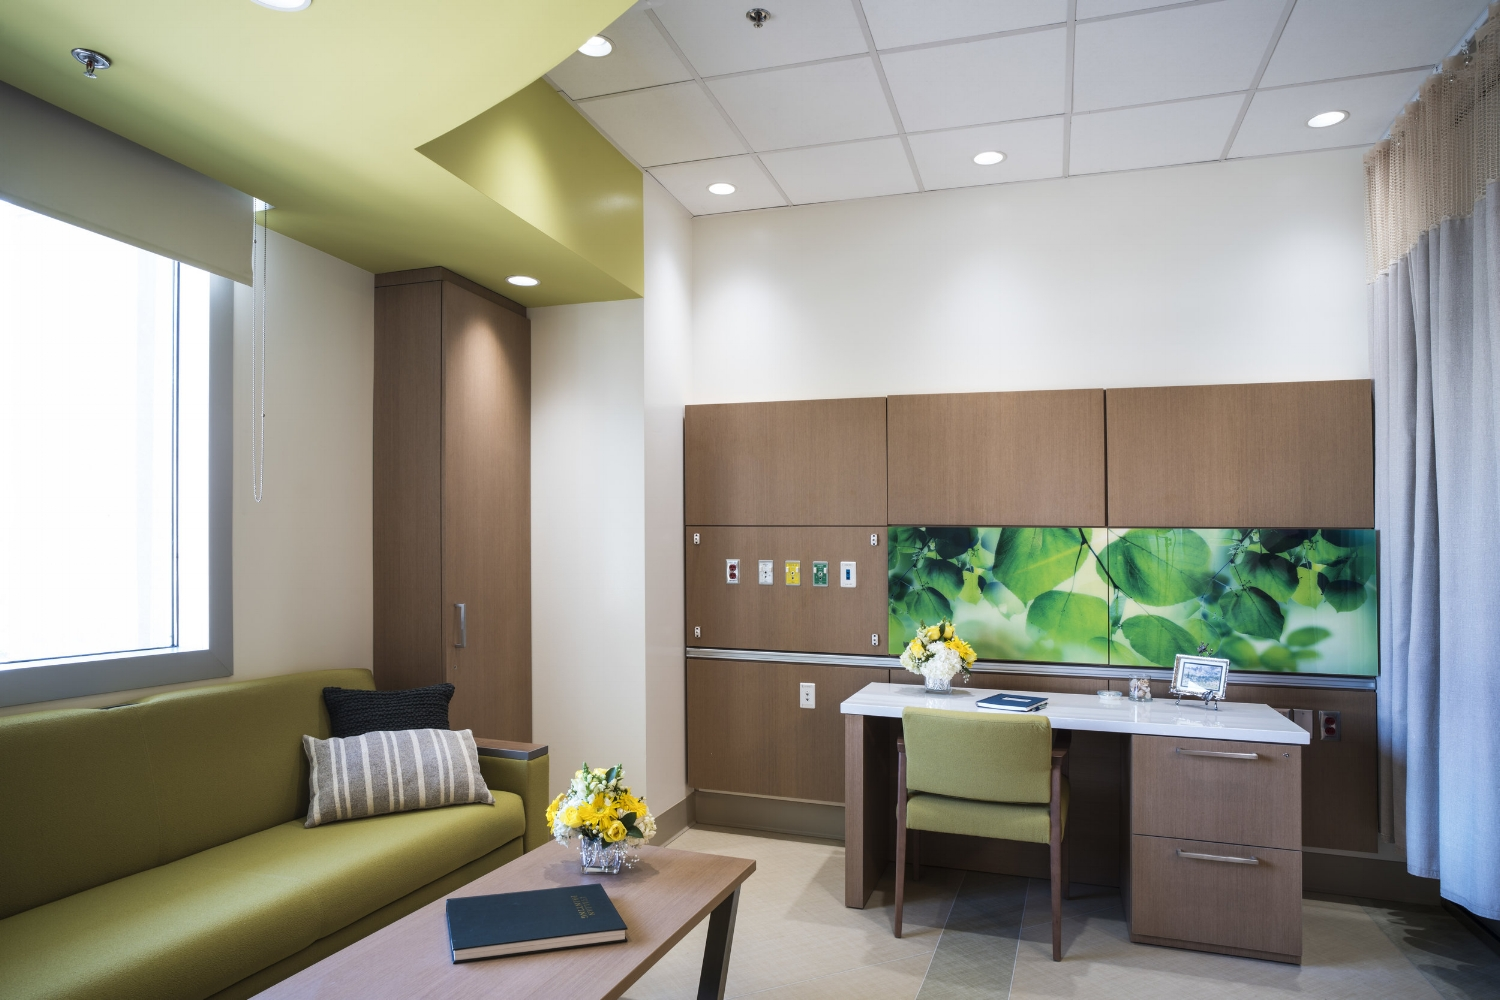 02 PHC Comfort Care Suite - Puchlik Design Associates.jpg